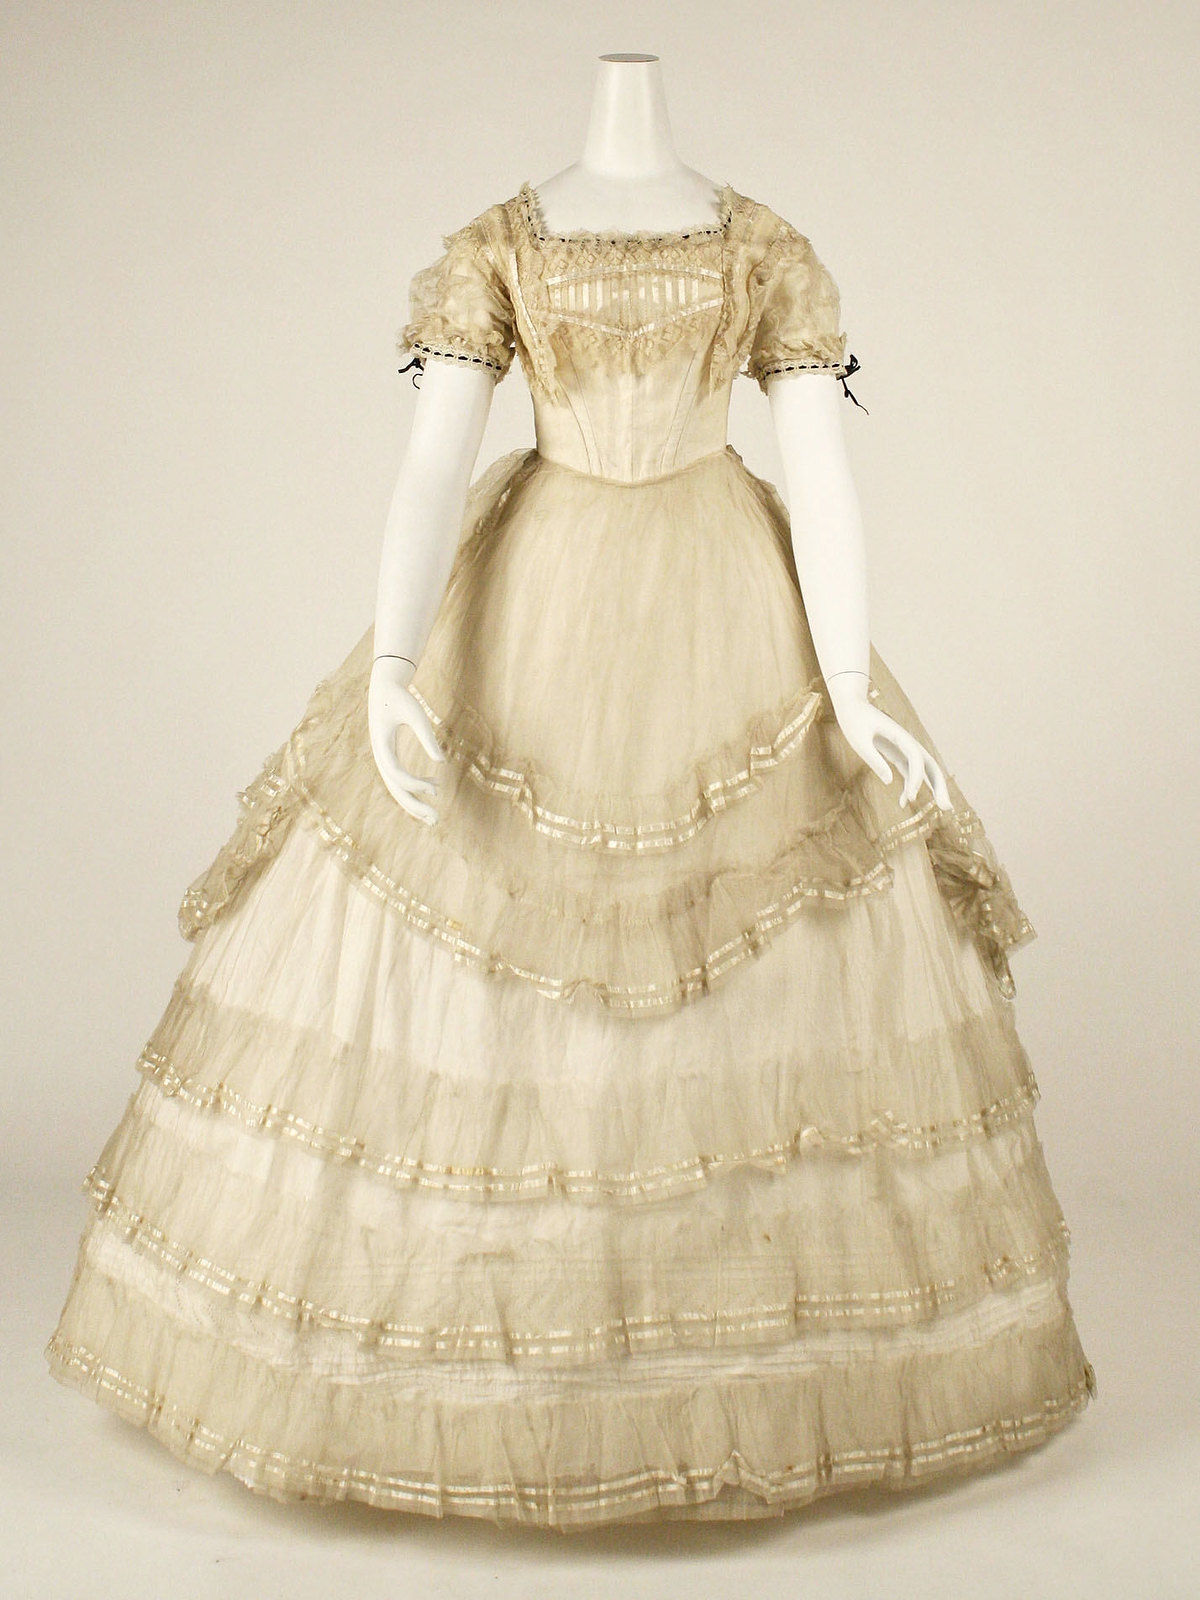 1869 Ball Gown. British. Cotton, silk. metmuseum